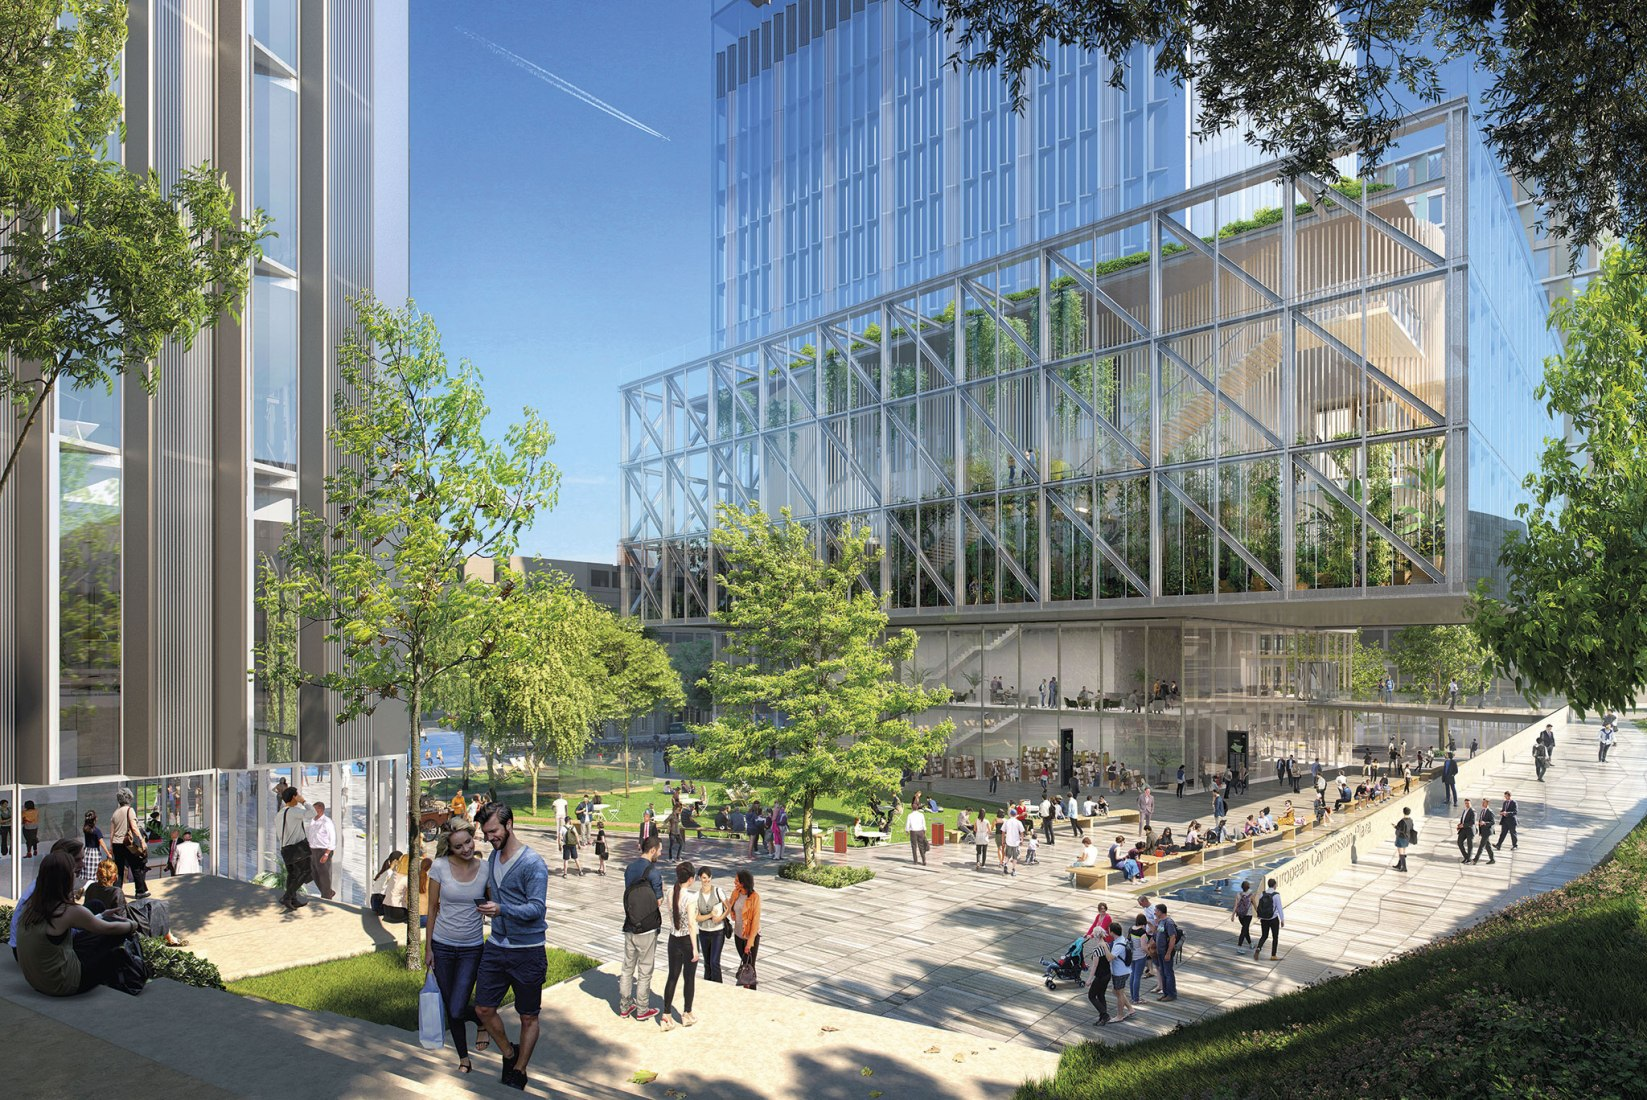 1st prize of Rafael de La-Hoz for the construction of new offices of the European Commission in Brussels.